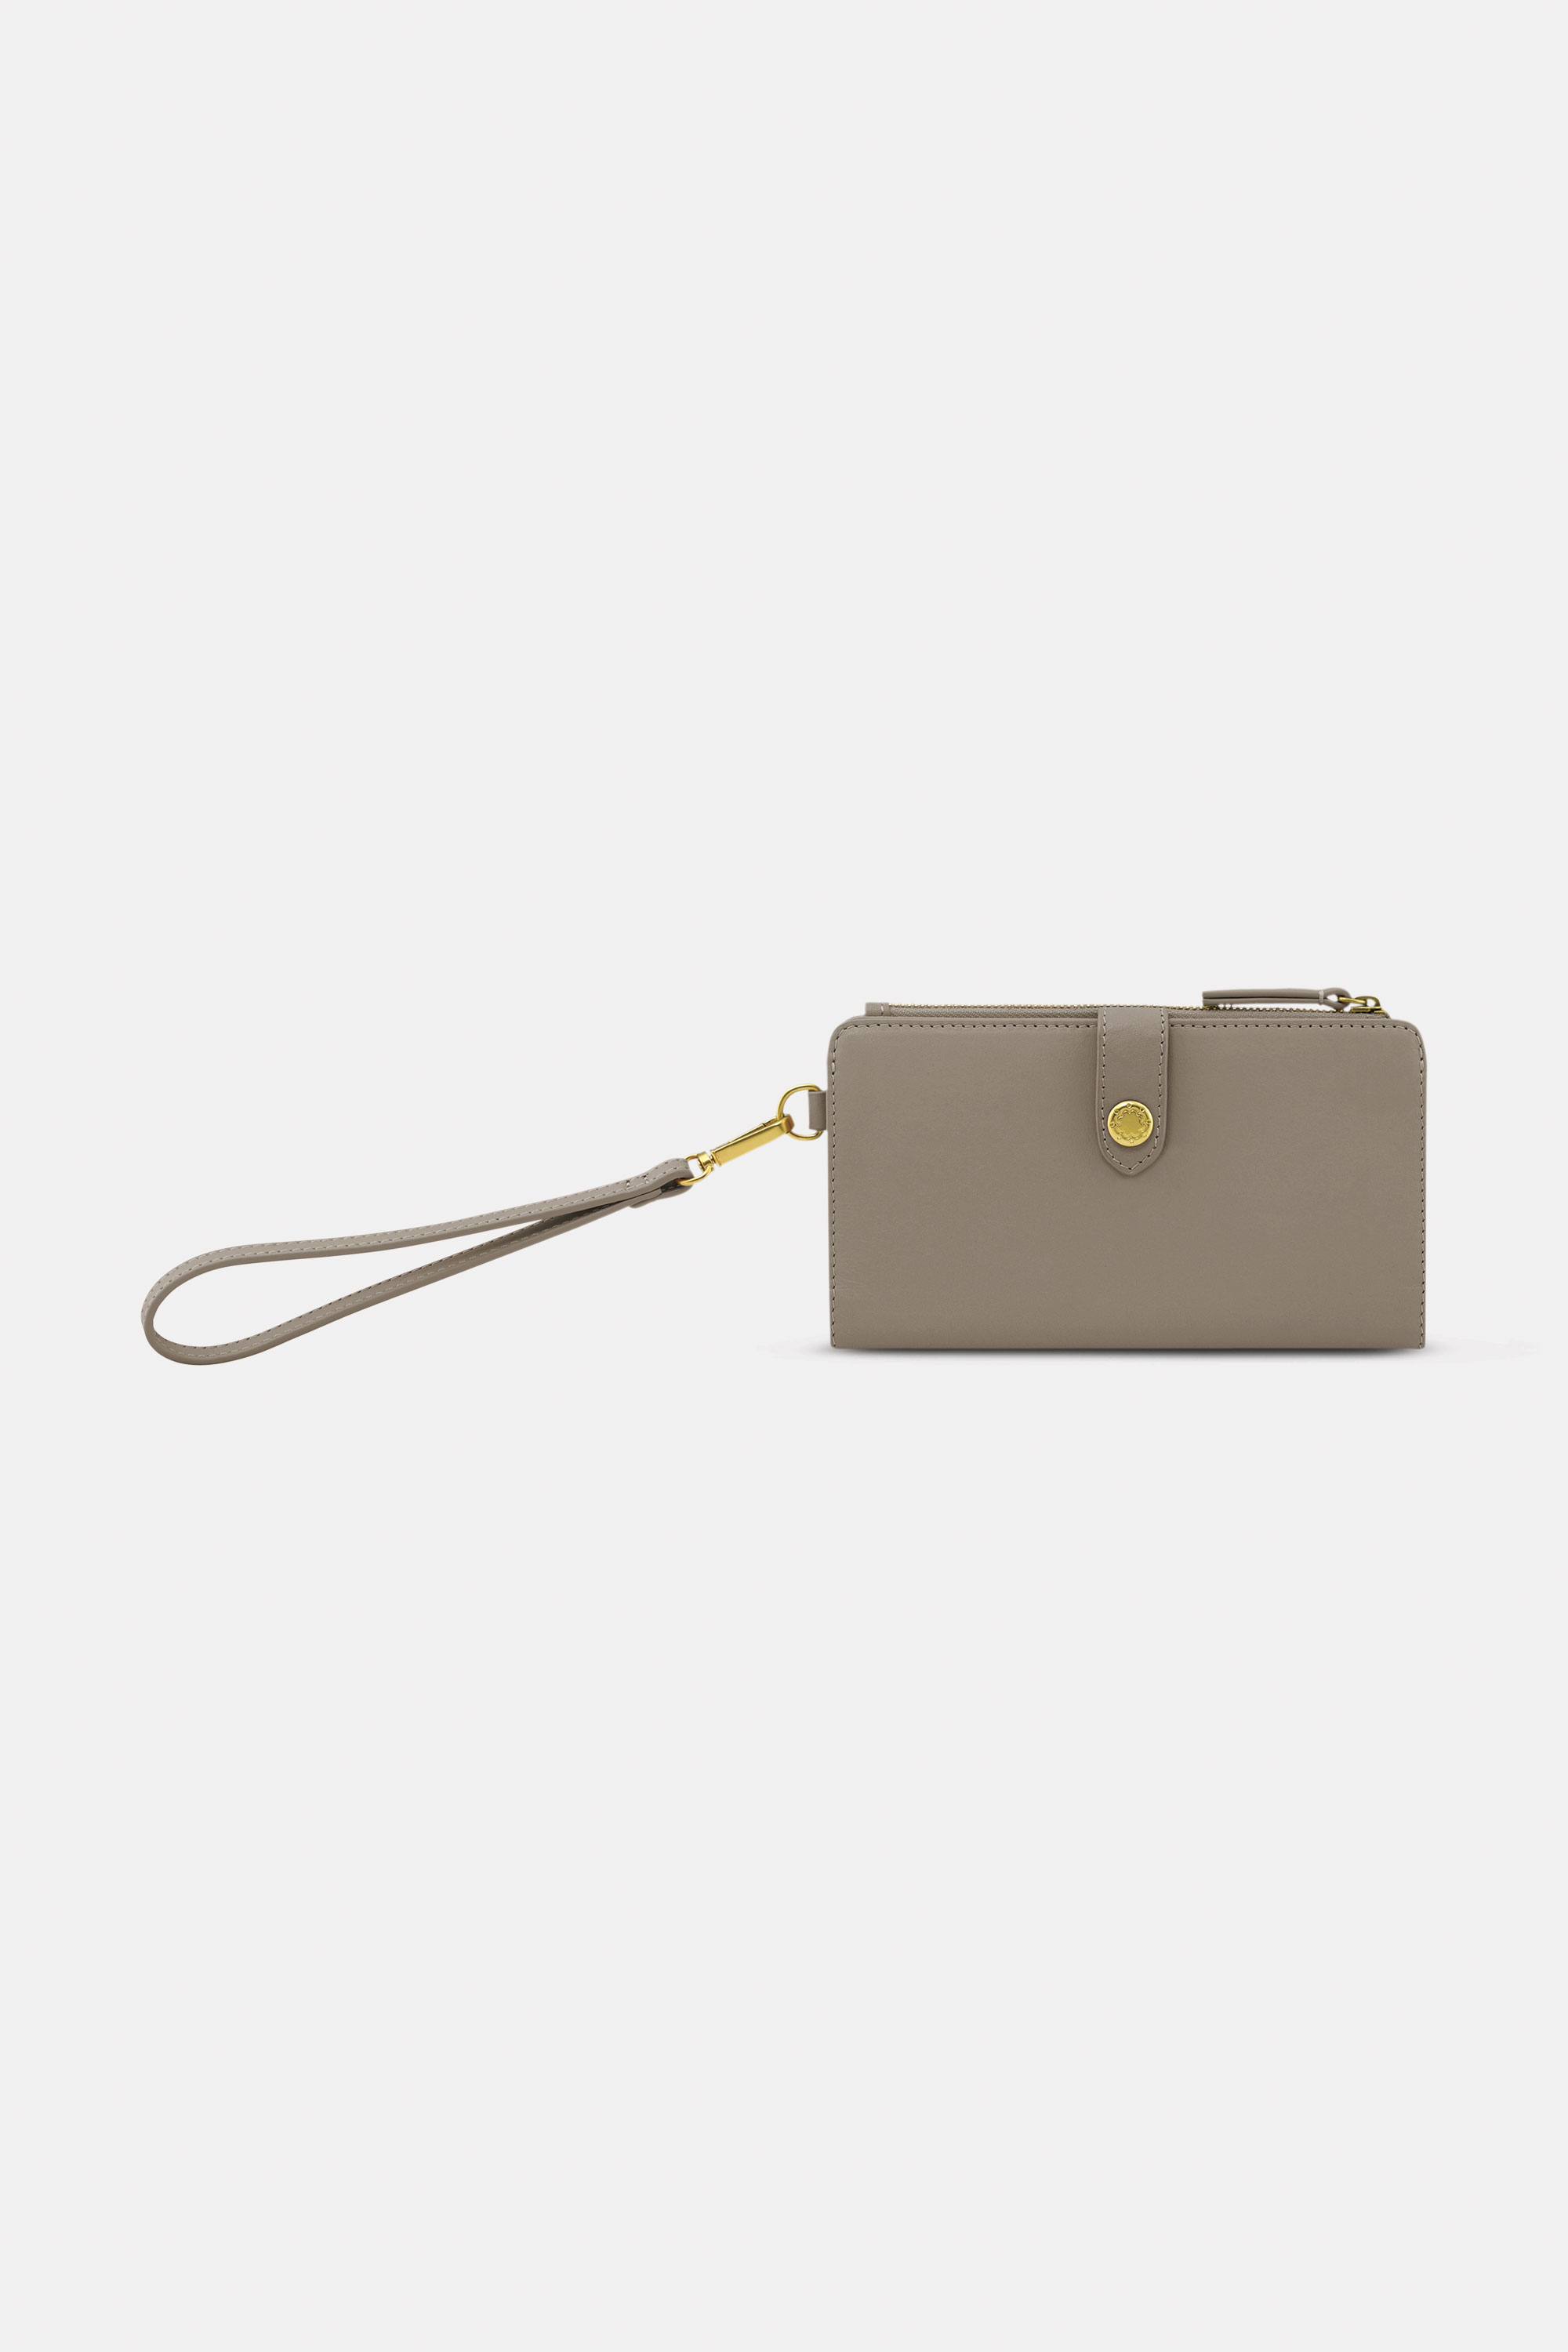 Cath Kidston Leather Phone Wallet in Taupe, Solid, 100% Leather